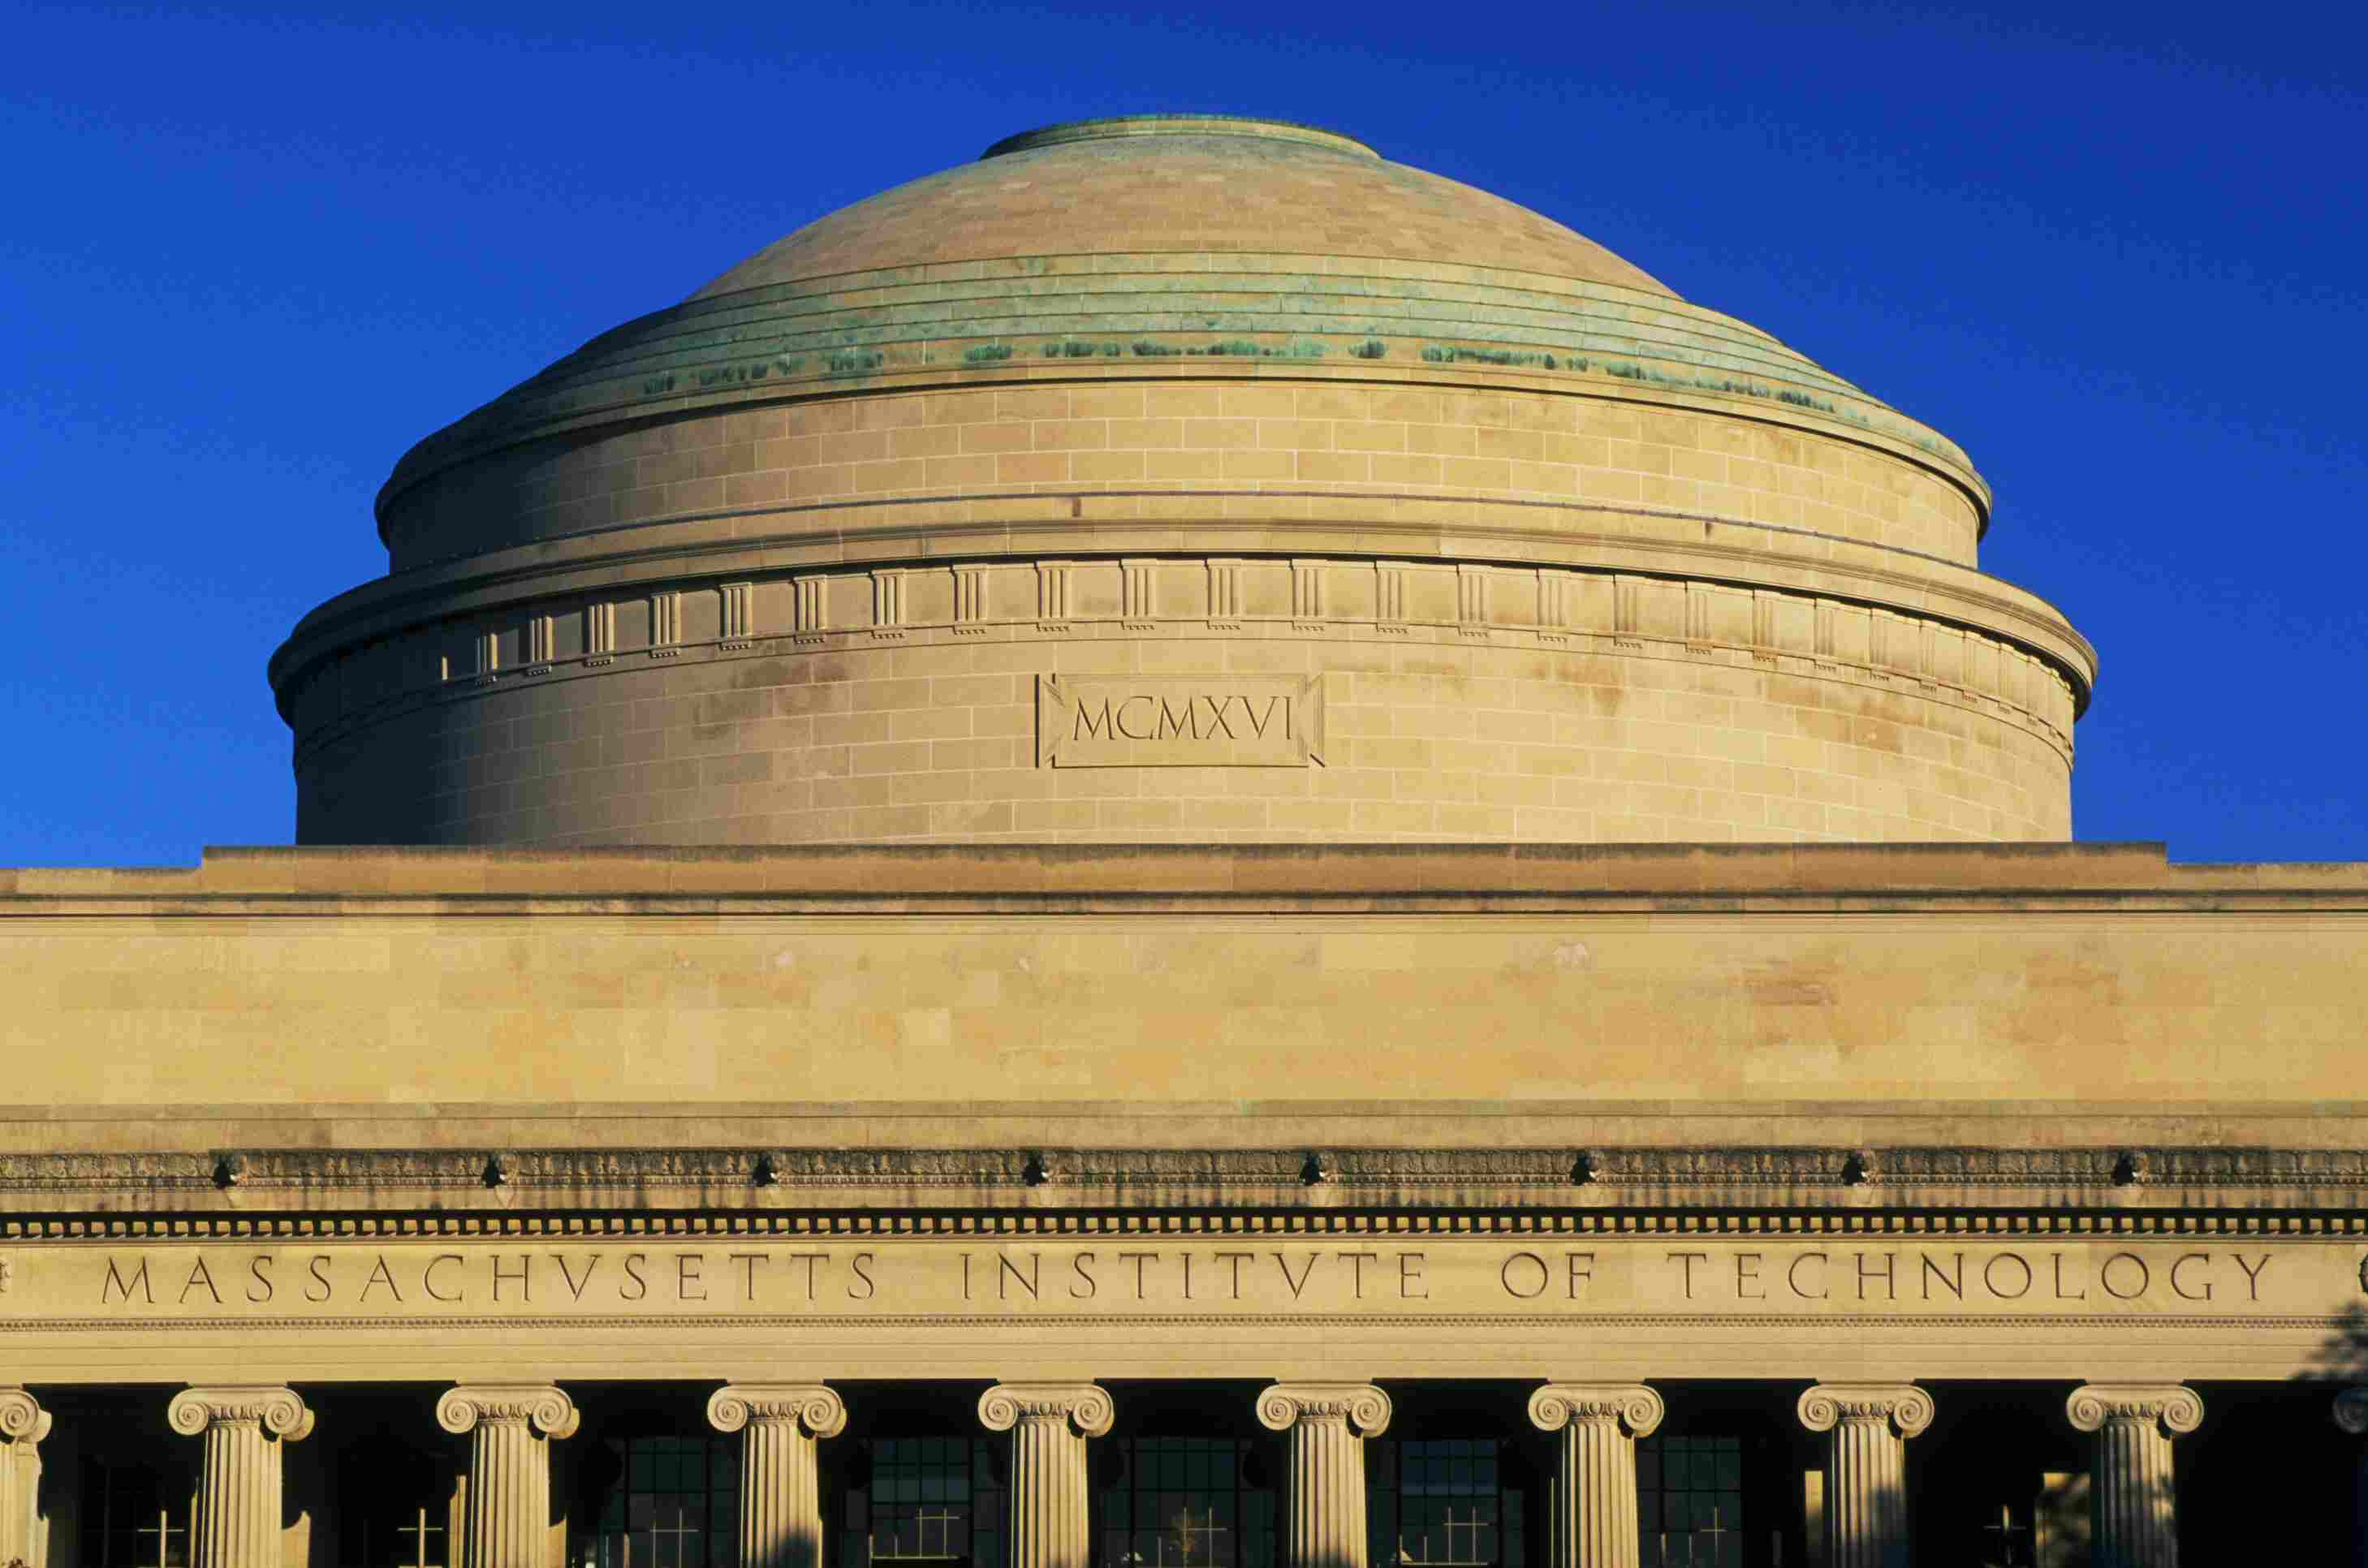 Dome resembling the Pantheon with carved lettering of MASSACHVSETTS INSTITVTE OF TECHNOLOGY